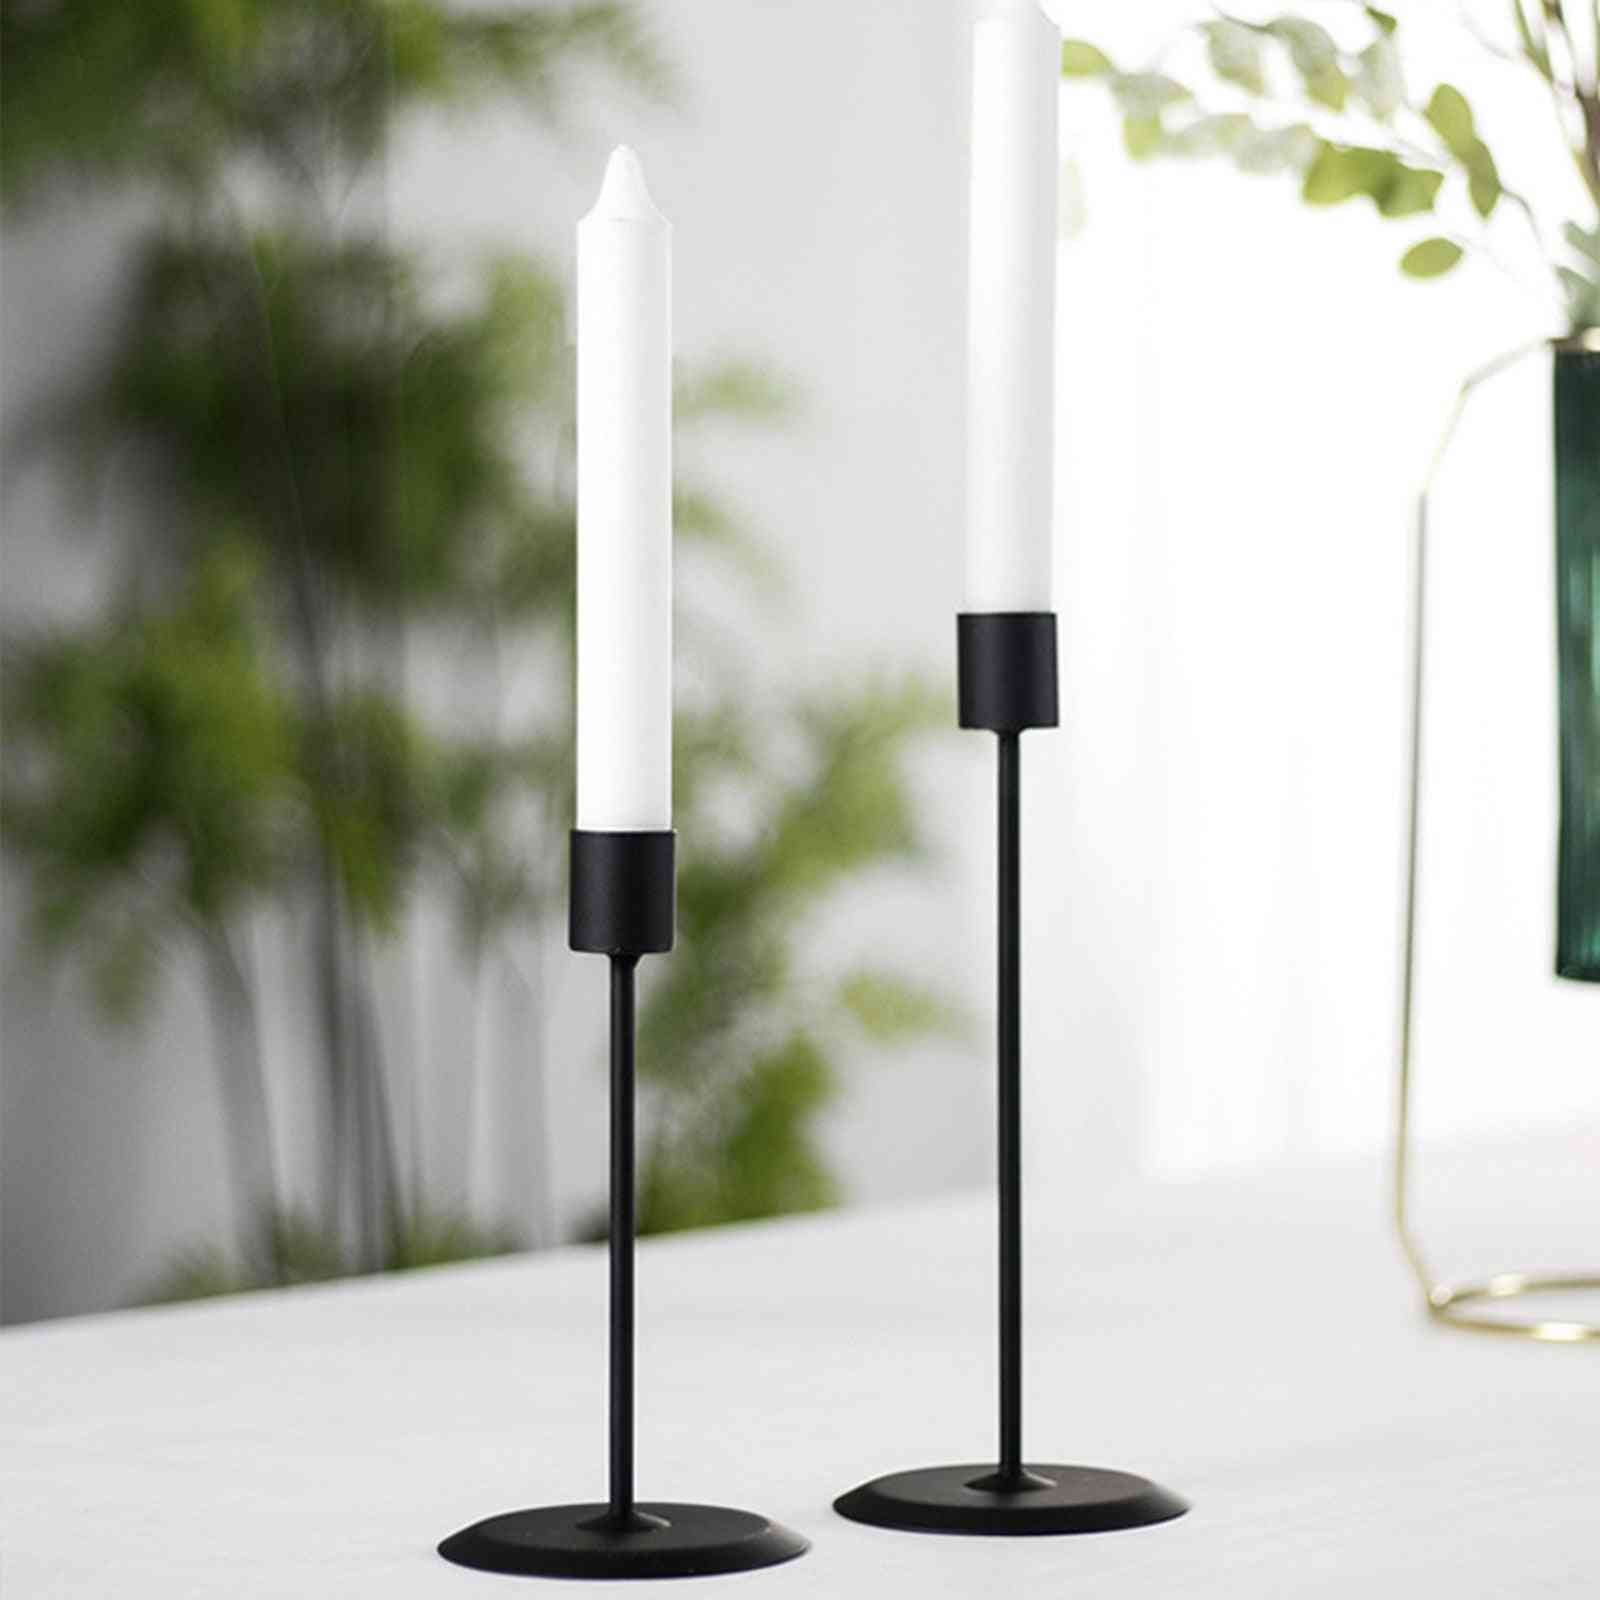 2 Pieces Candle Holder